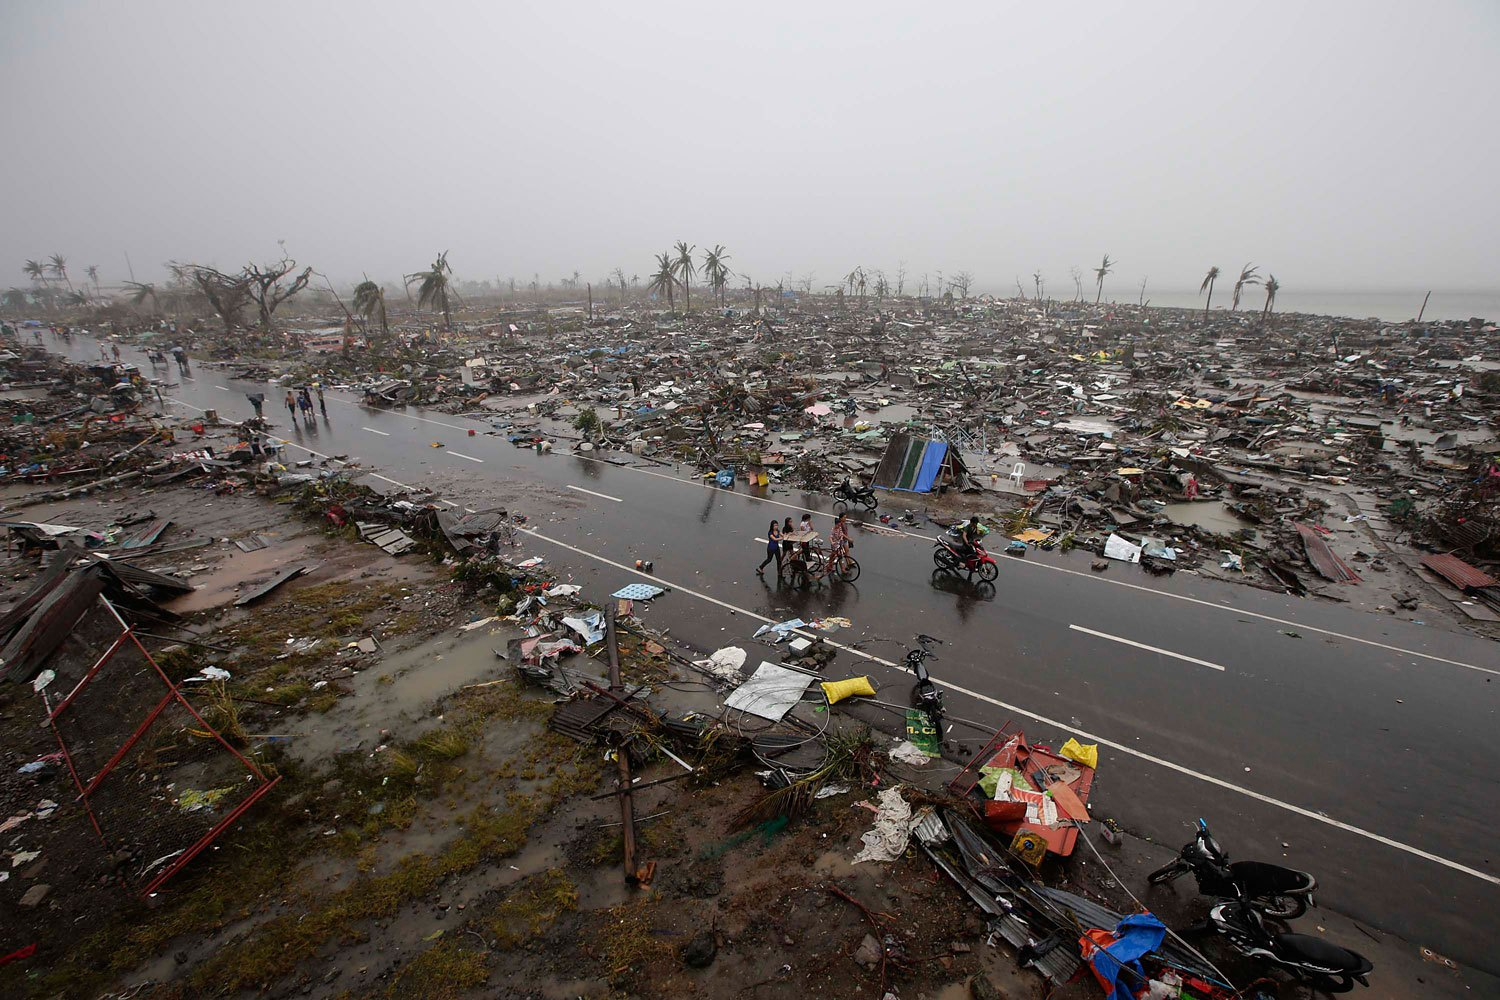 Filipino villagers carrying their belongings during a heavy downpour walk past rubble of houses in the supertyphoon-devastated city of Tacloban, in the Philippines' Leyte province, on Nov. 10, 2013